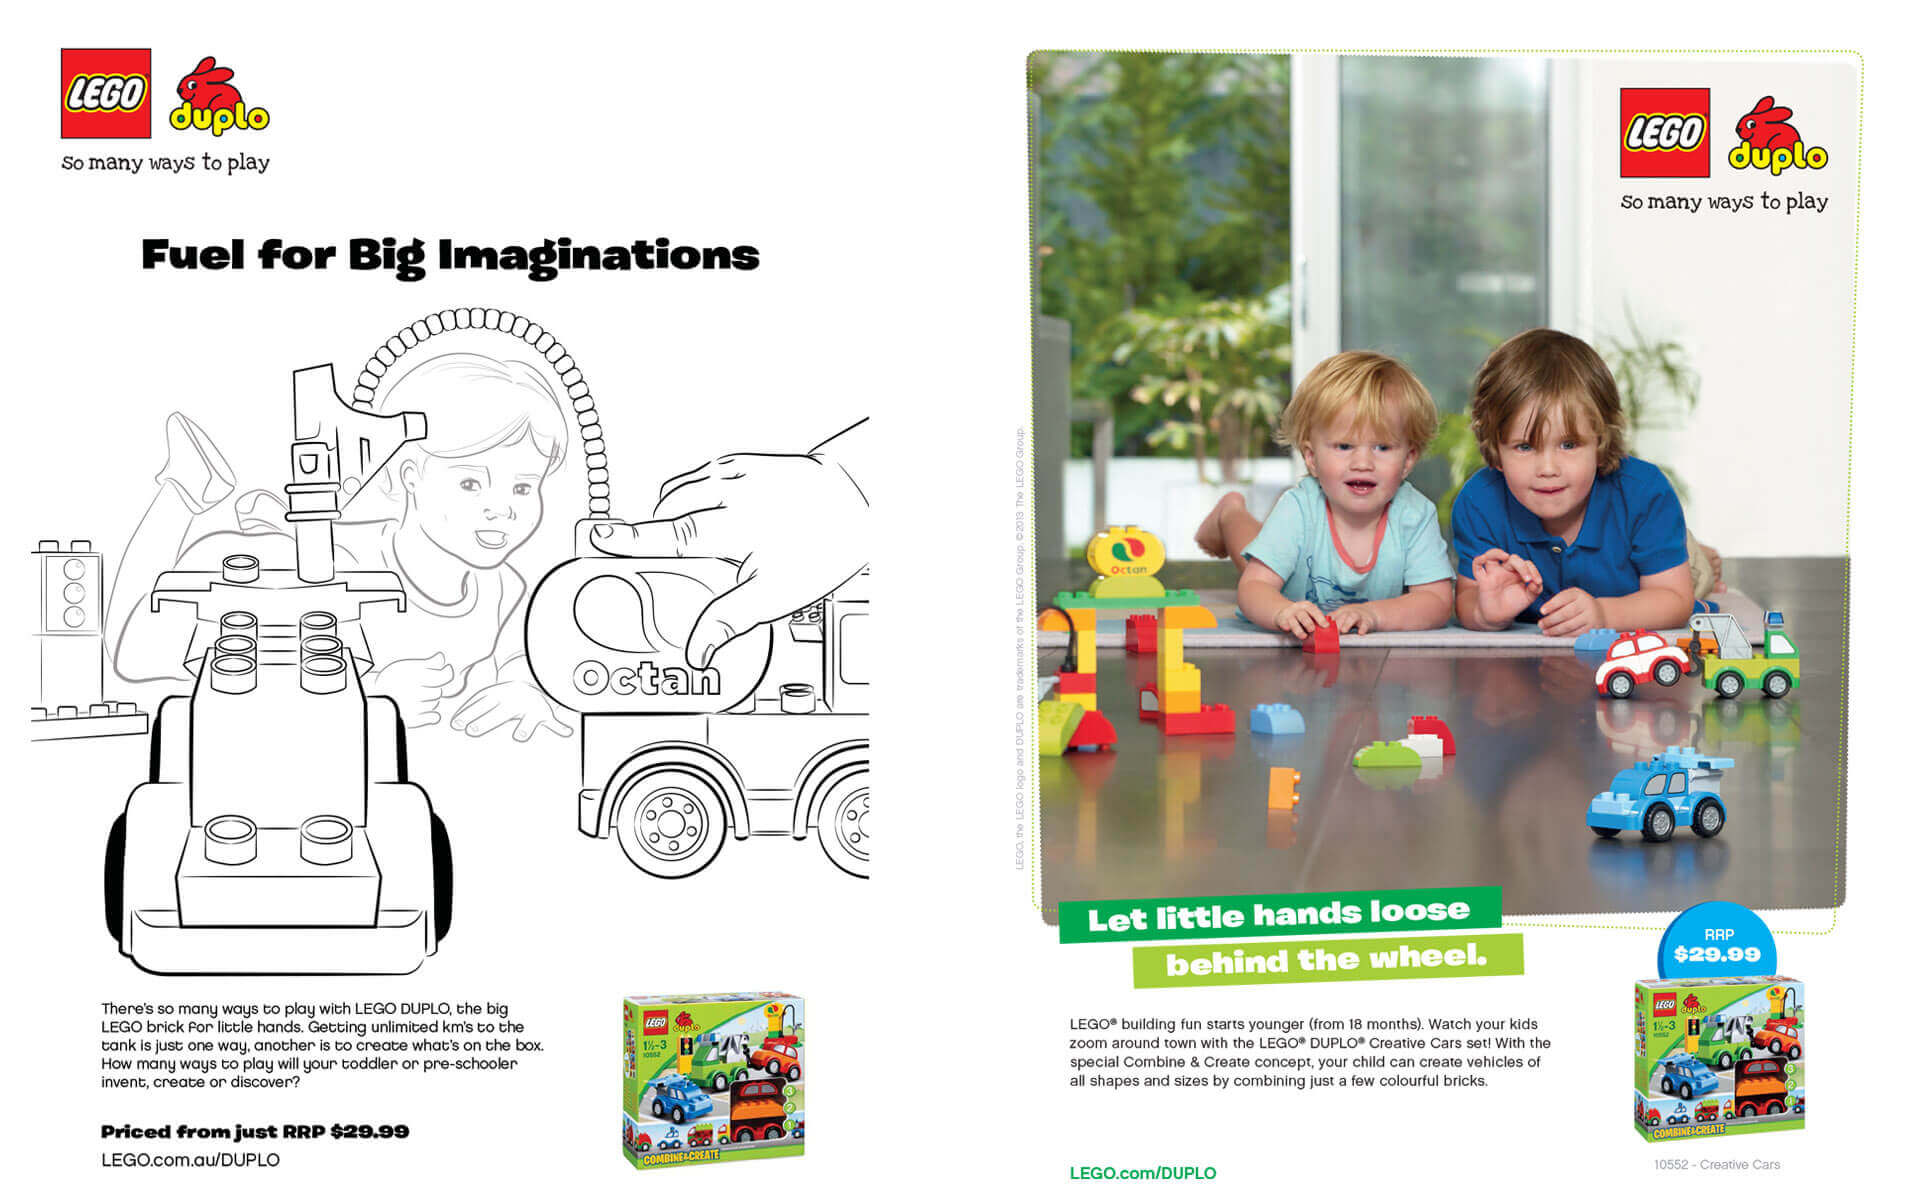 LEGO Duplo 'Let Little Hands Loose Behind the Wheel' magazine ad and scamp.